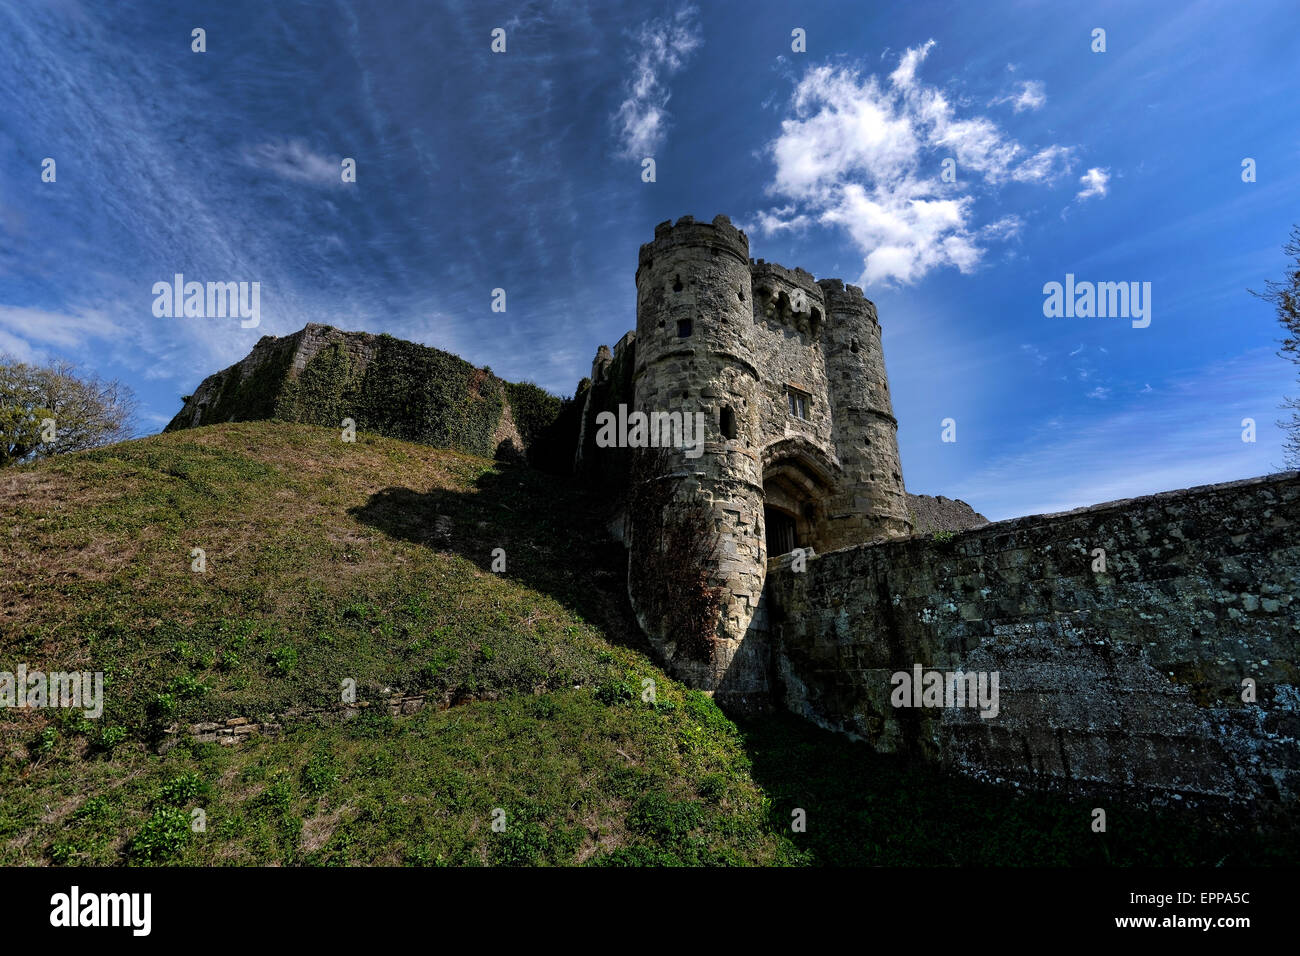 Carisbrooke Castle is a historic motte-and-bailey castle located in Carisbrooke, Isle of Wight, where Charles I - Stock Image